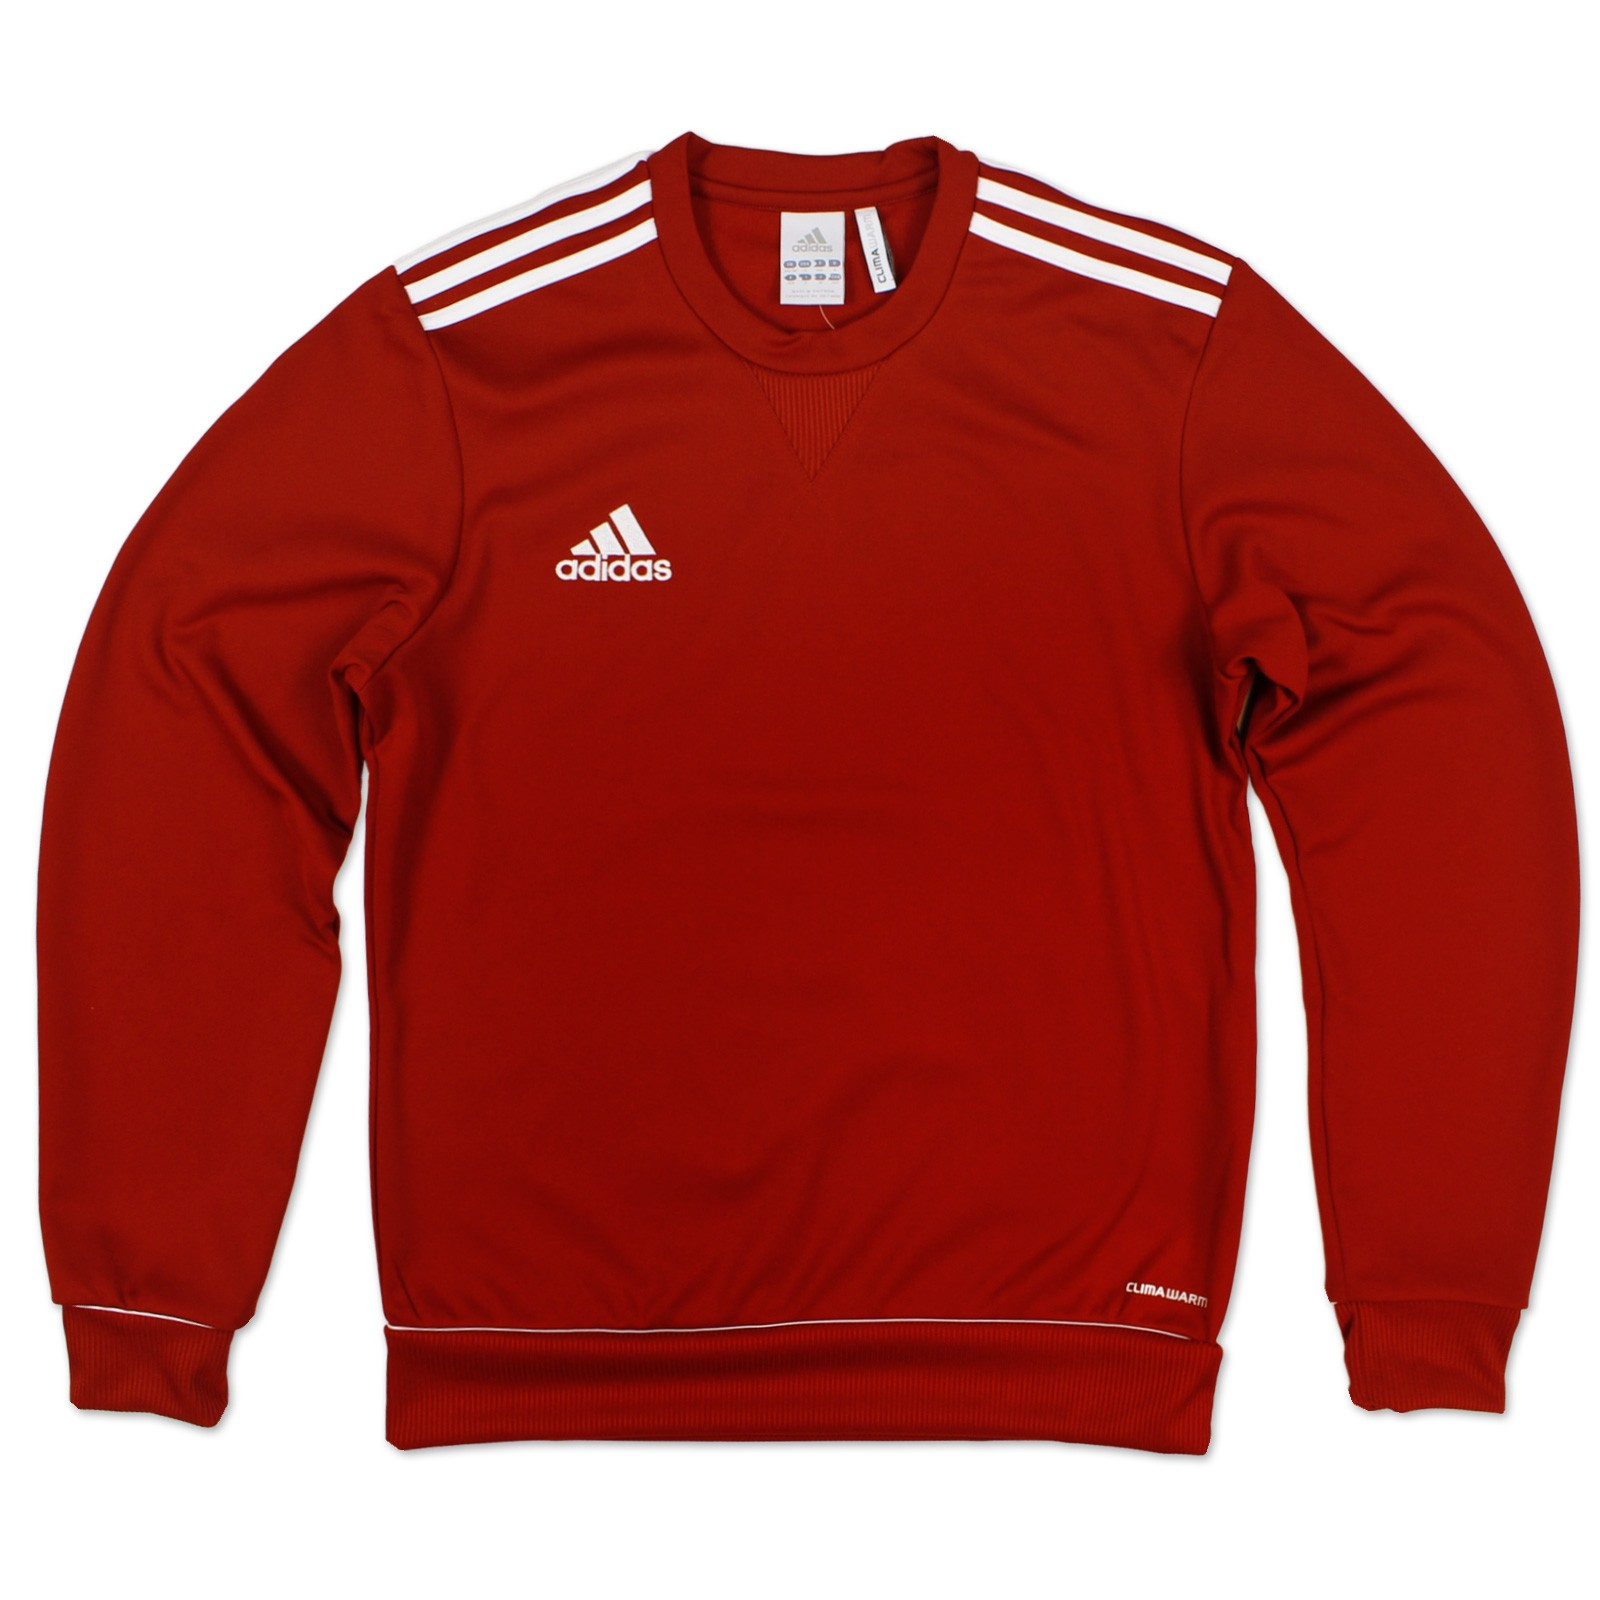 adidas performance herren ess 3 s swt top sweatshirt sweater pullover rot d7 l ebay. Black Bedroom Furniture Sets. Home Design Ideas